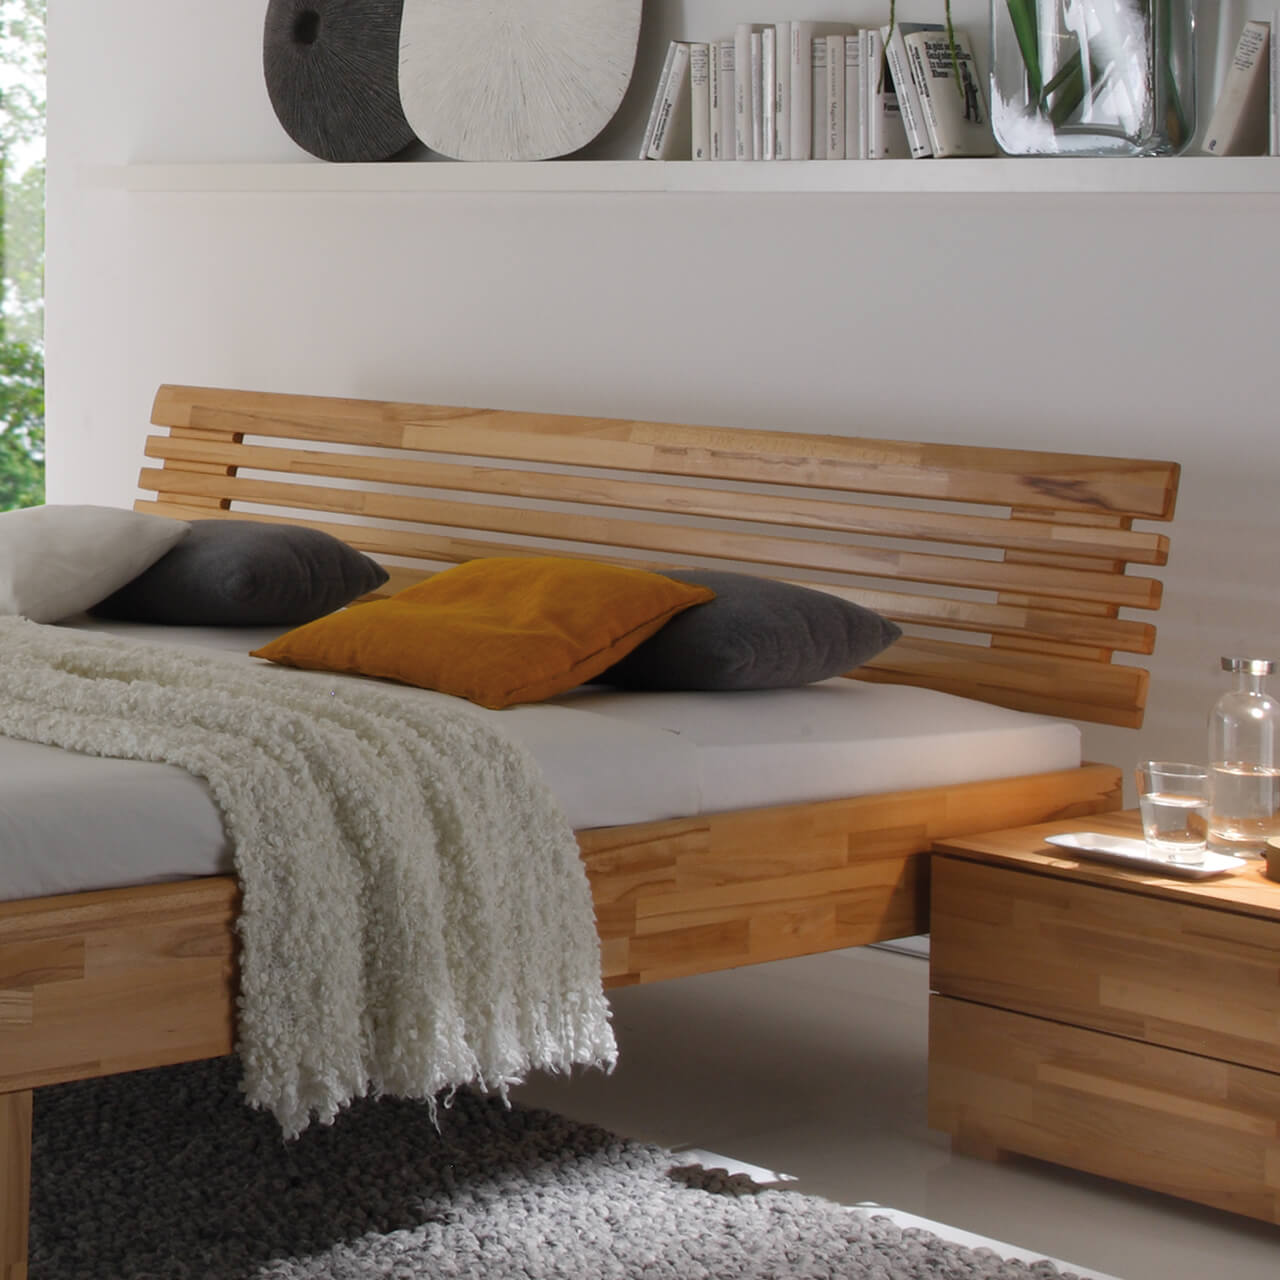 massiv holz kopfteile suma wasserbetten. Black Bedroom Furniture Sets. Home Design Ideas